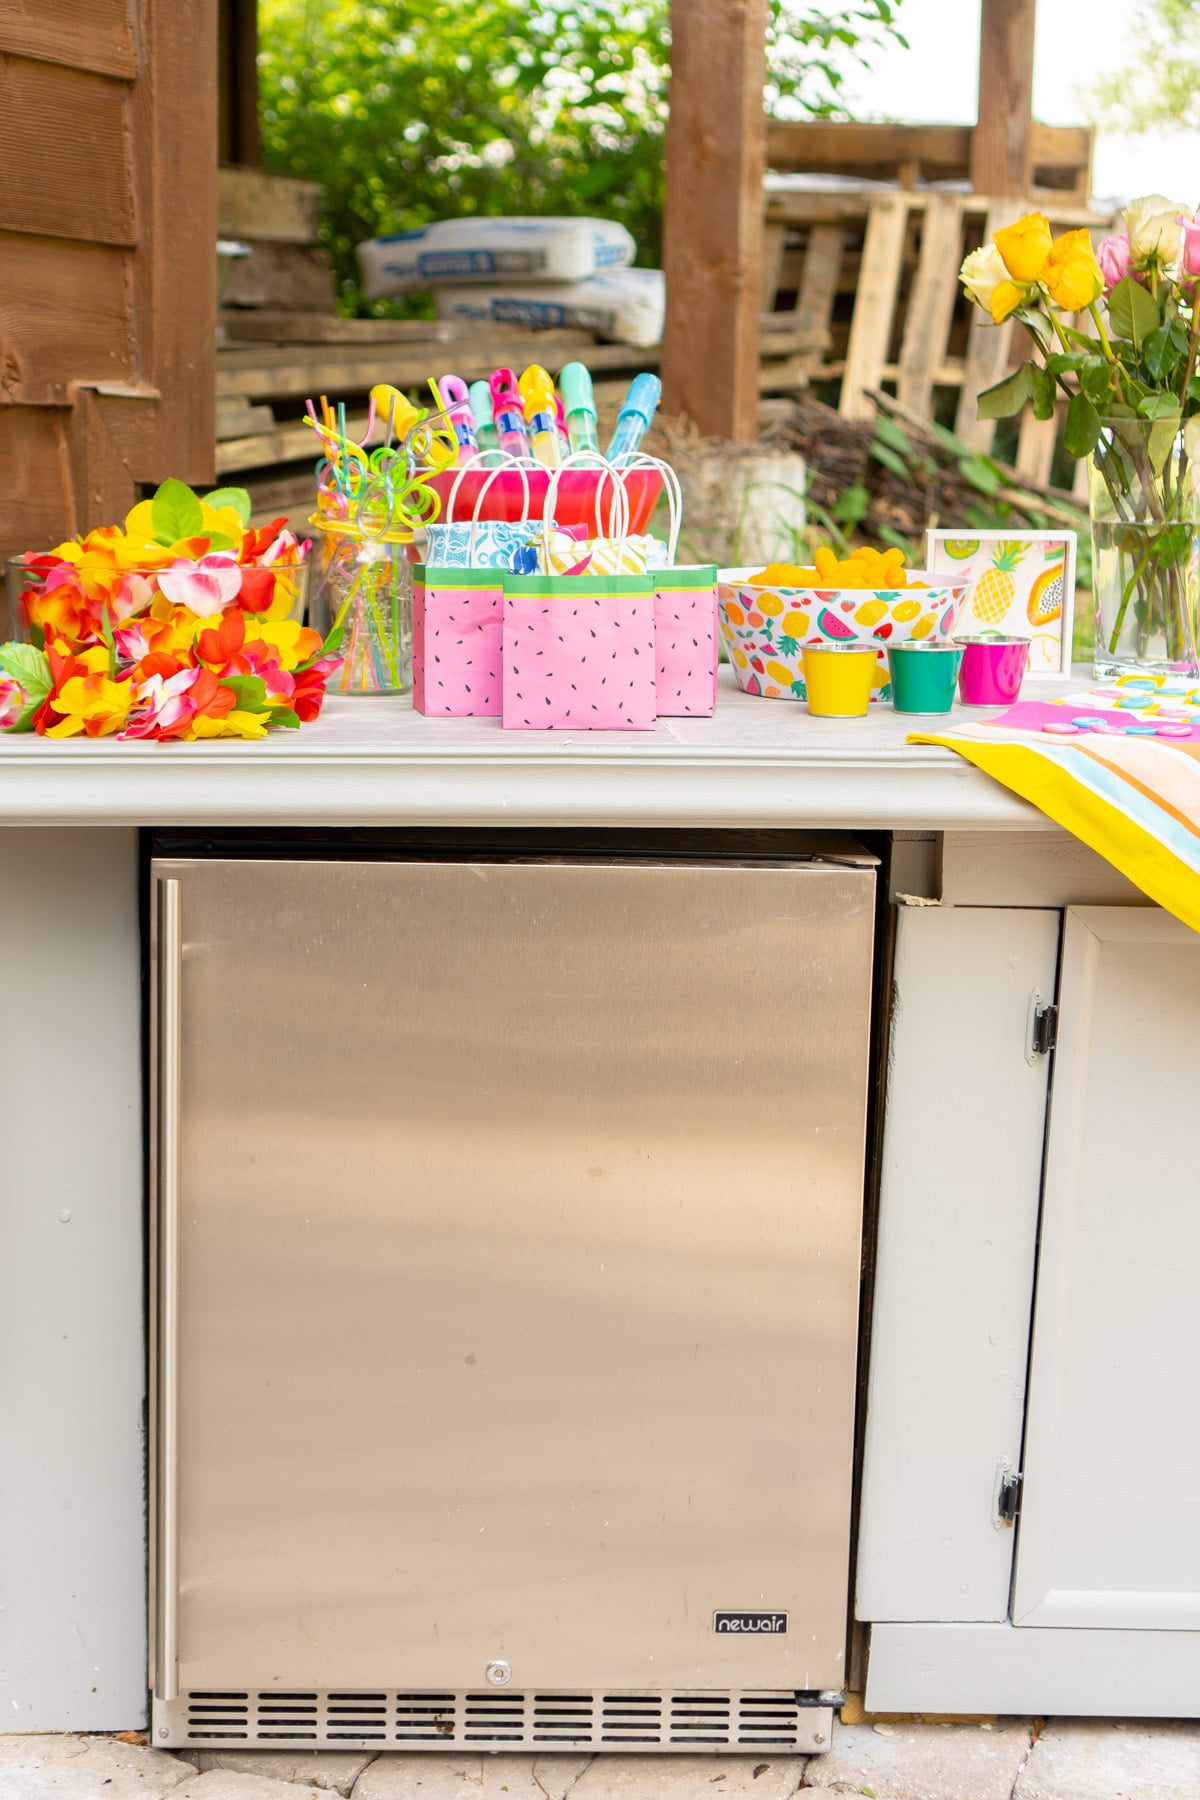 Newair beverage fridge and colorful party favors